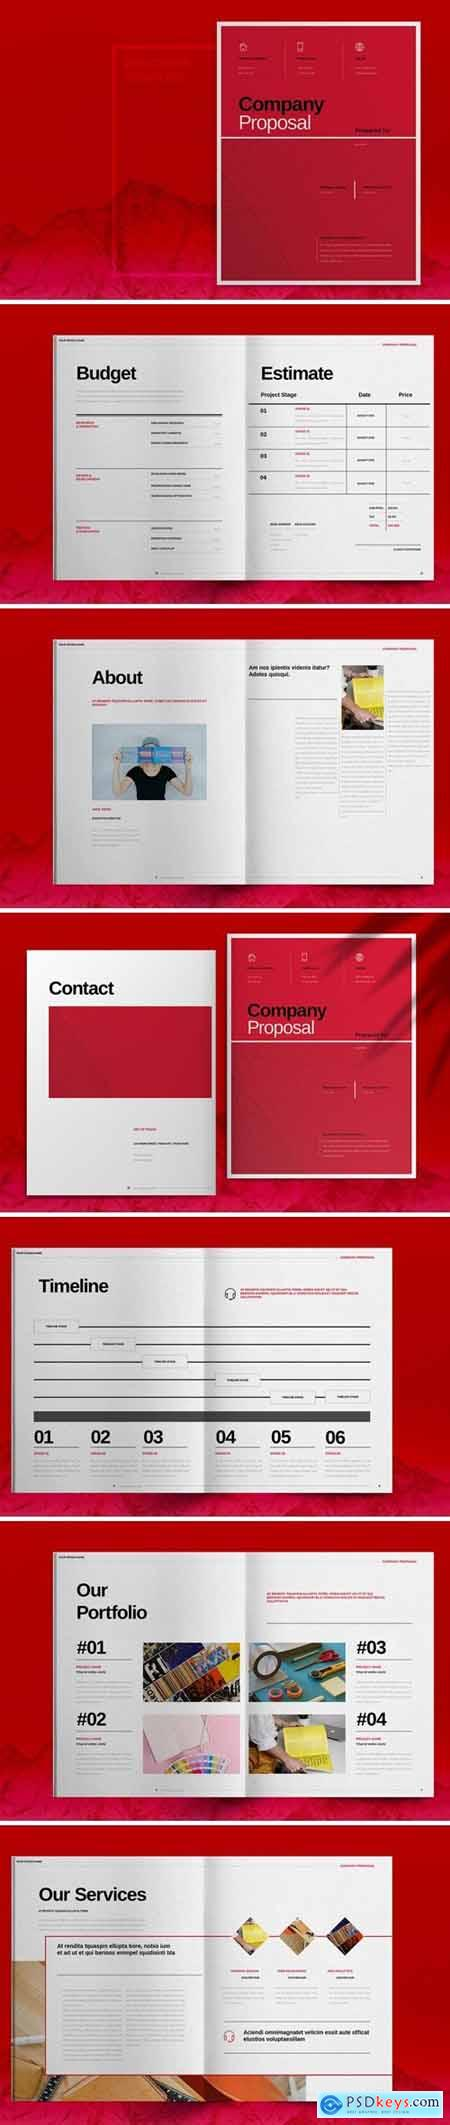 Red Company Proposal